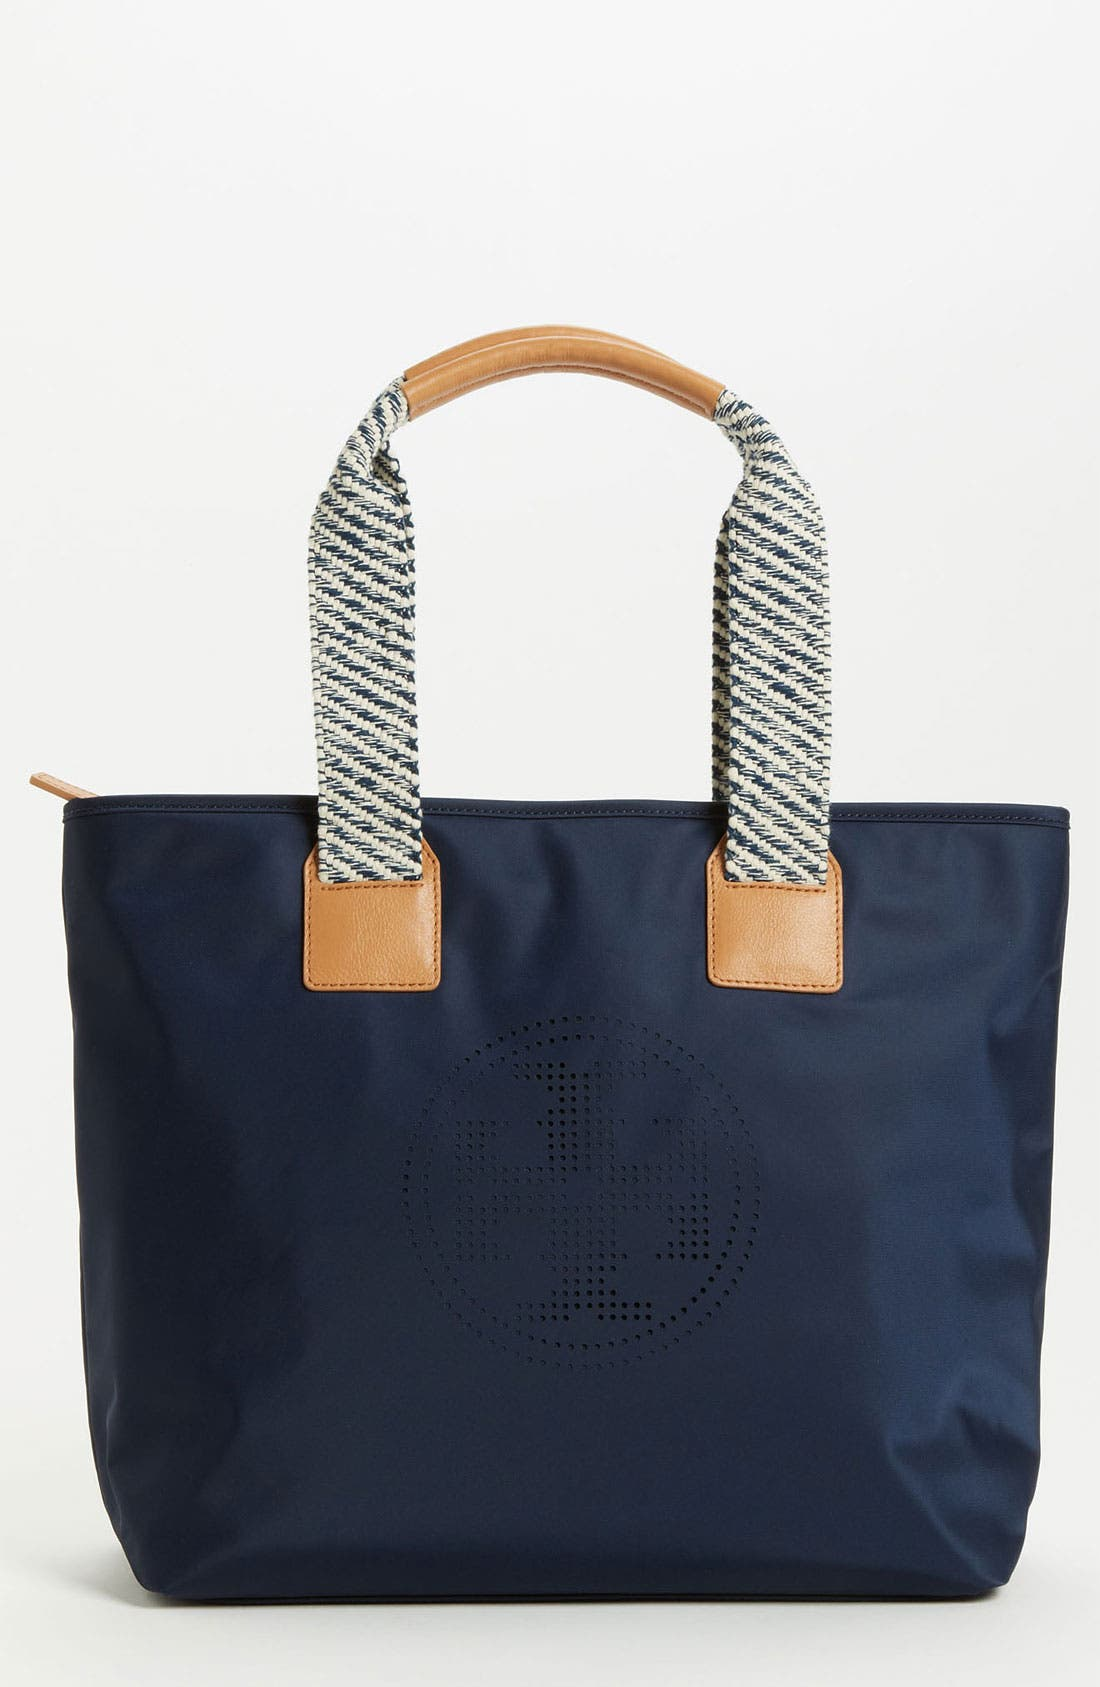 Main Image - Tory Burch 'Small' Perforated Logo Tote